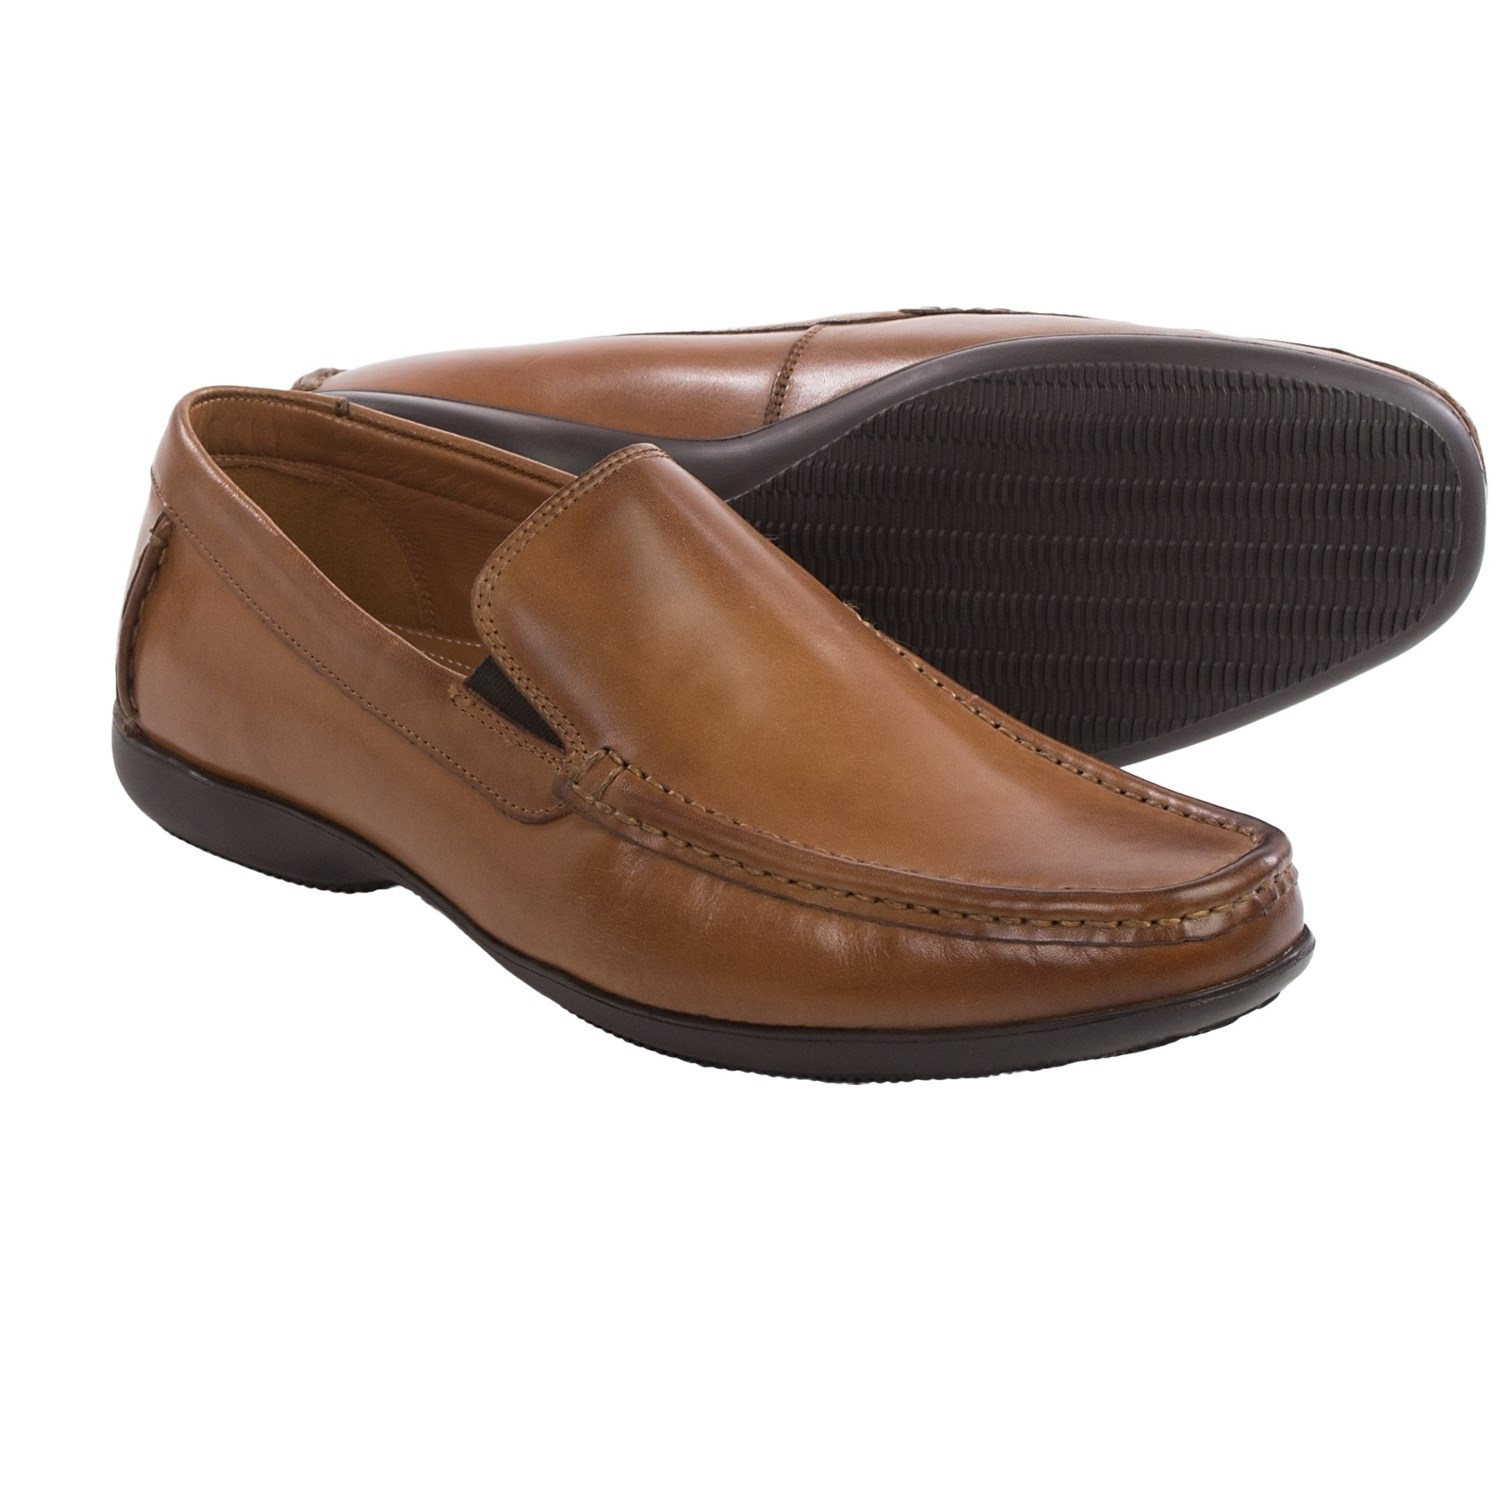 clark men Discover our clarks men's desert boots often imitated, never bettered, our iconic desert boots originally launched in the 1950's and come in a range of leathers and suedes free delivery over £50 or click & collect.